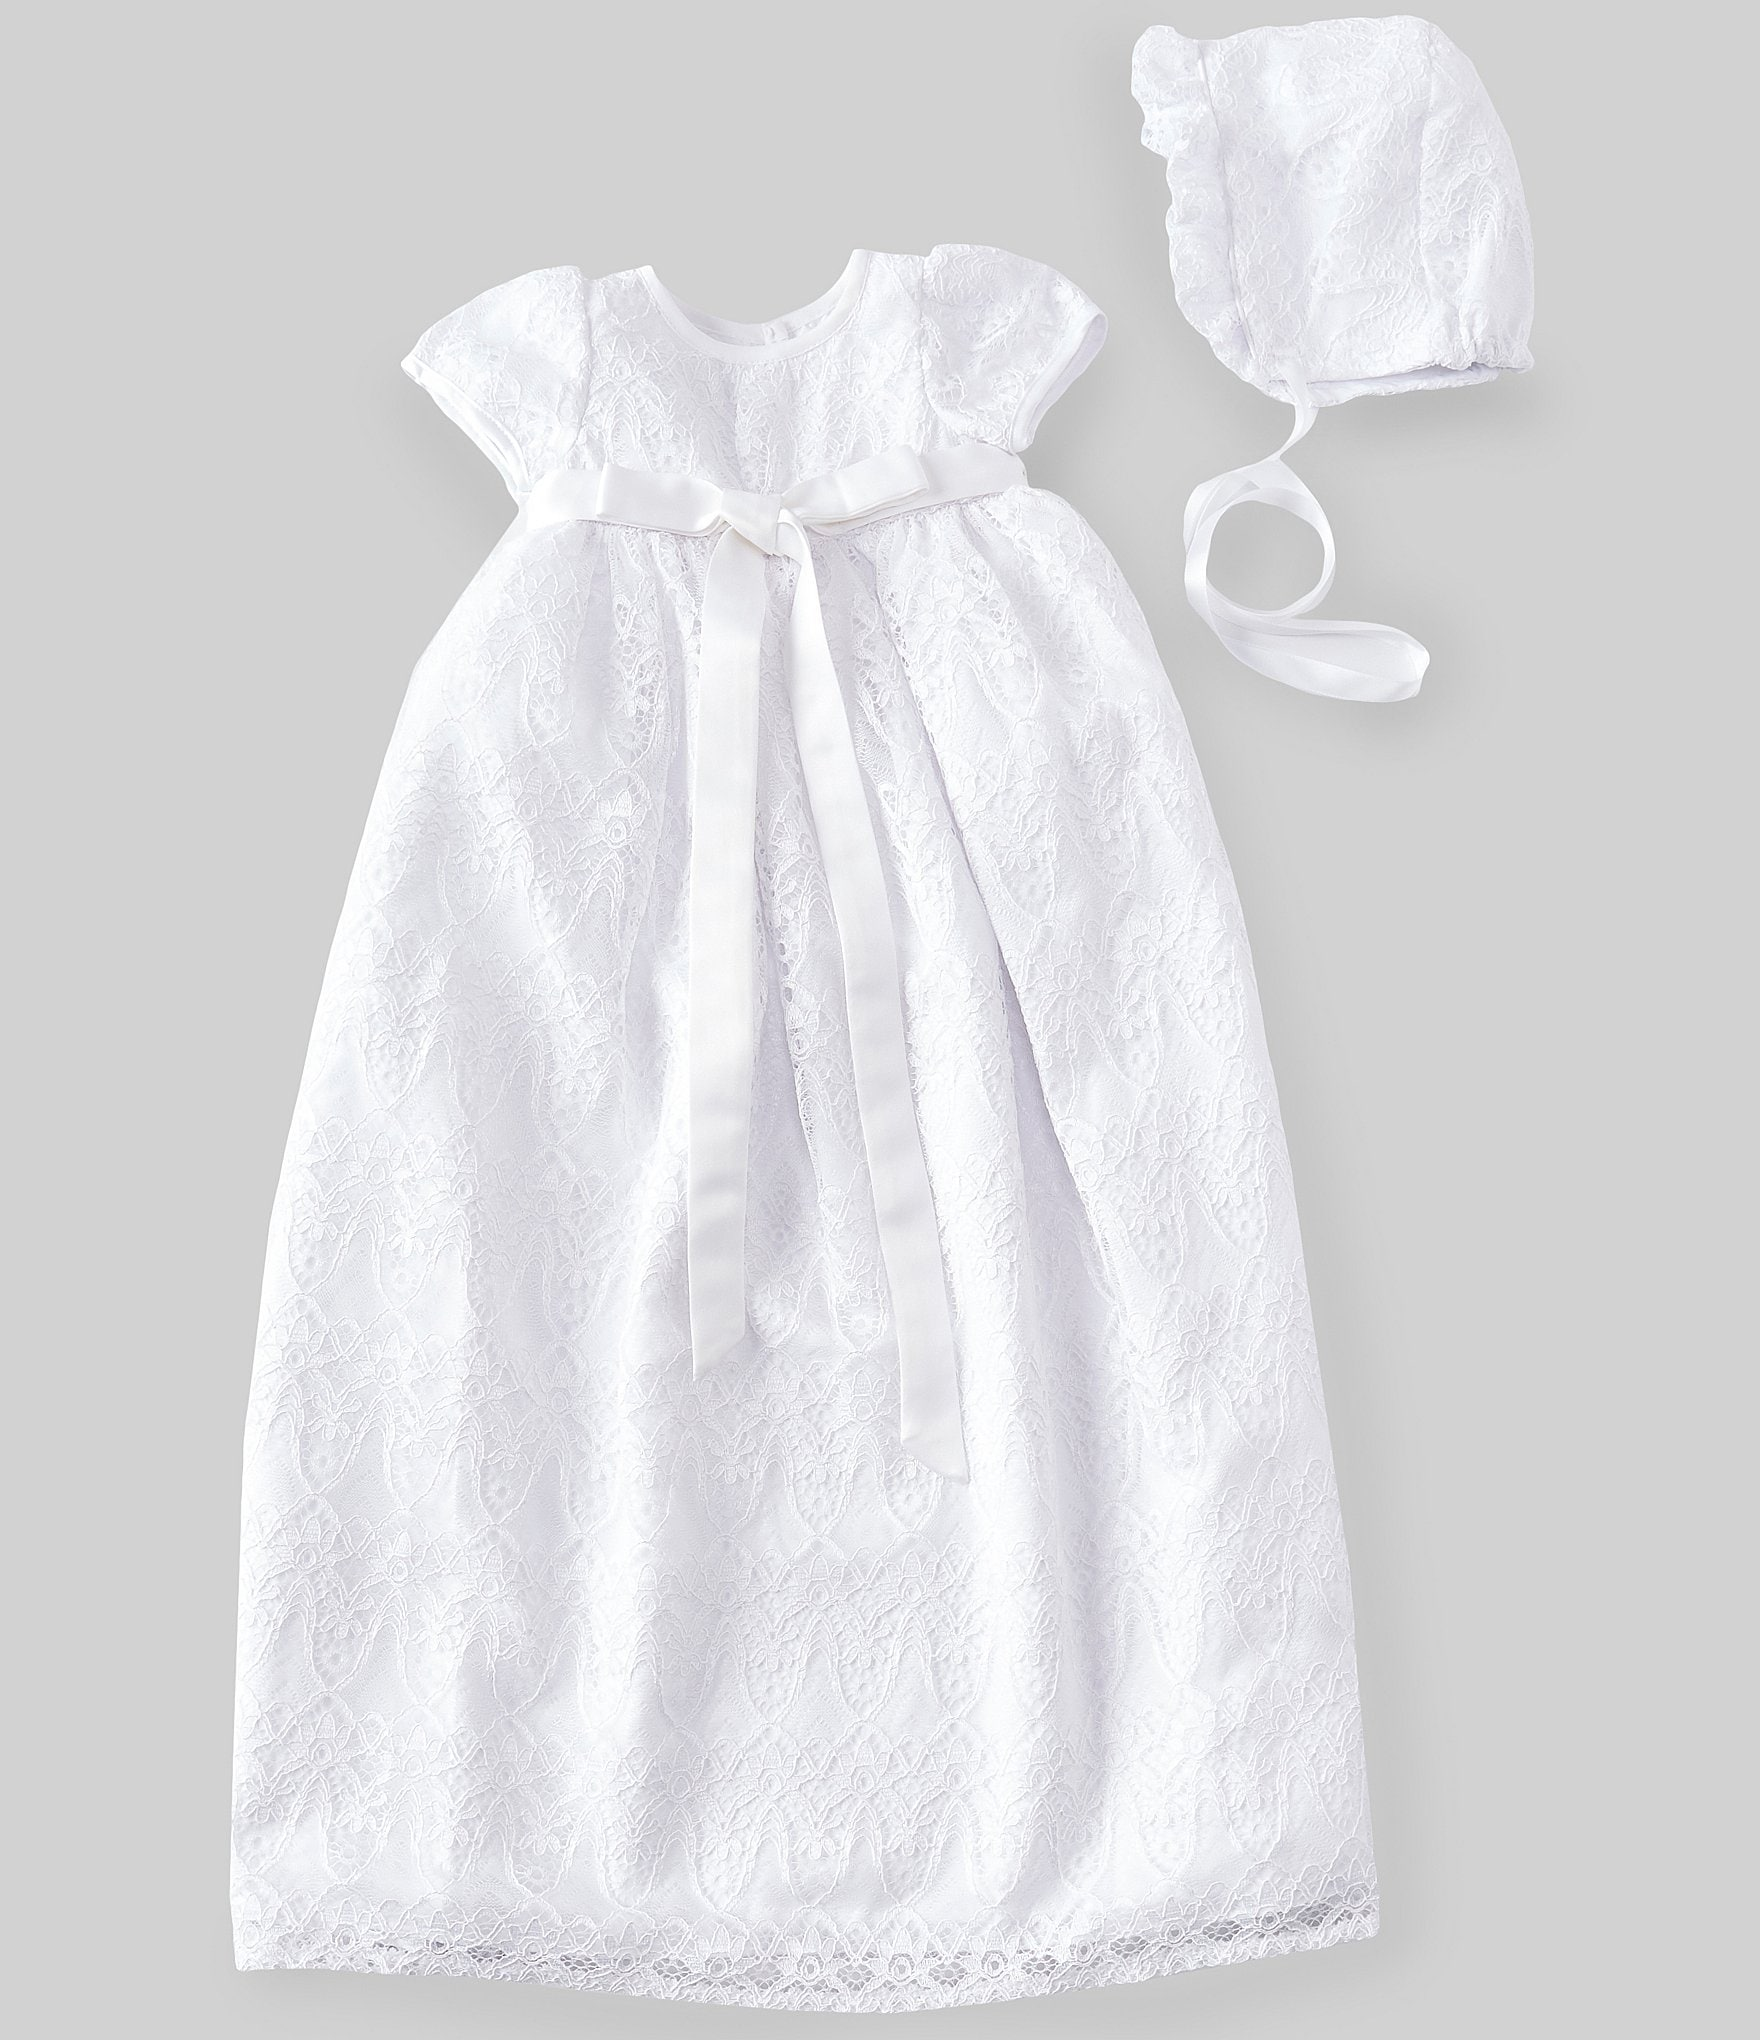 52c78ce7bd120 Pippa & Julie Baby Girls Newborn-24 Months Lace Christening Gown